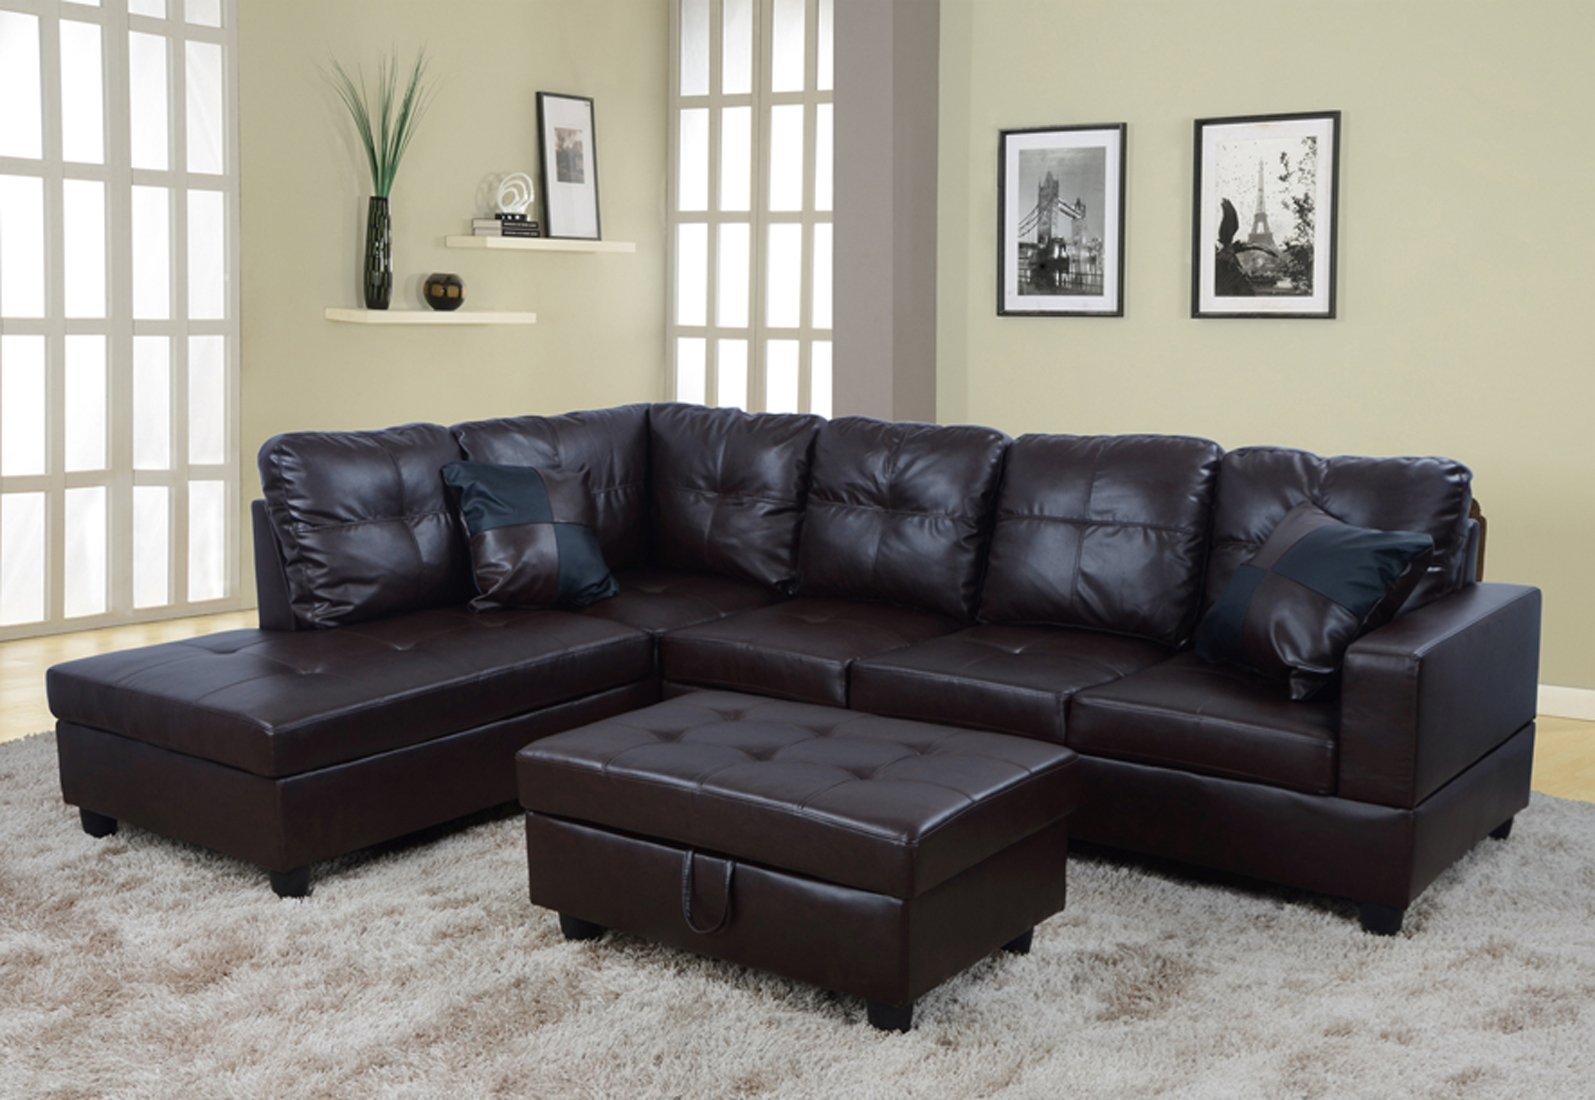 chocolate brown leather sectional sofa with 2 storage ottomans restoration hardware chesterfield for sale cheap 3 piece find get quotations lifestyle faux left facing set ottoman